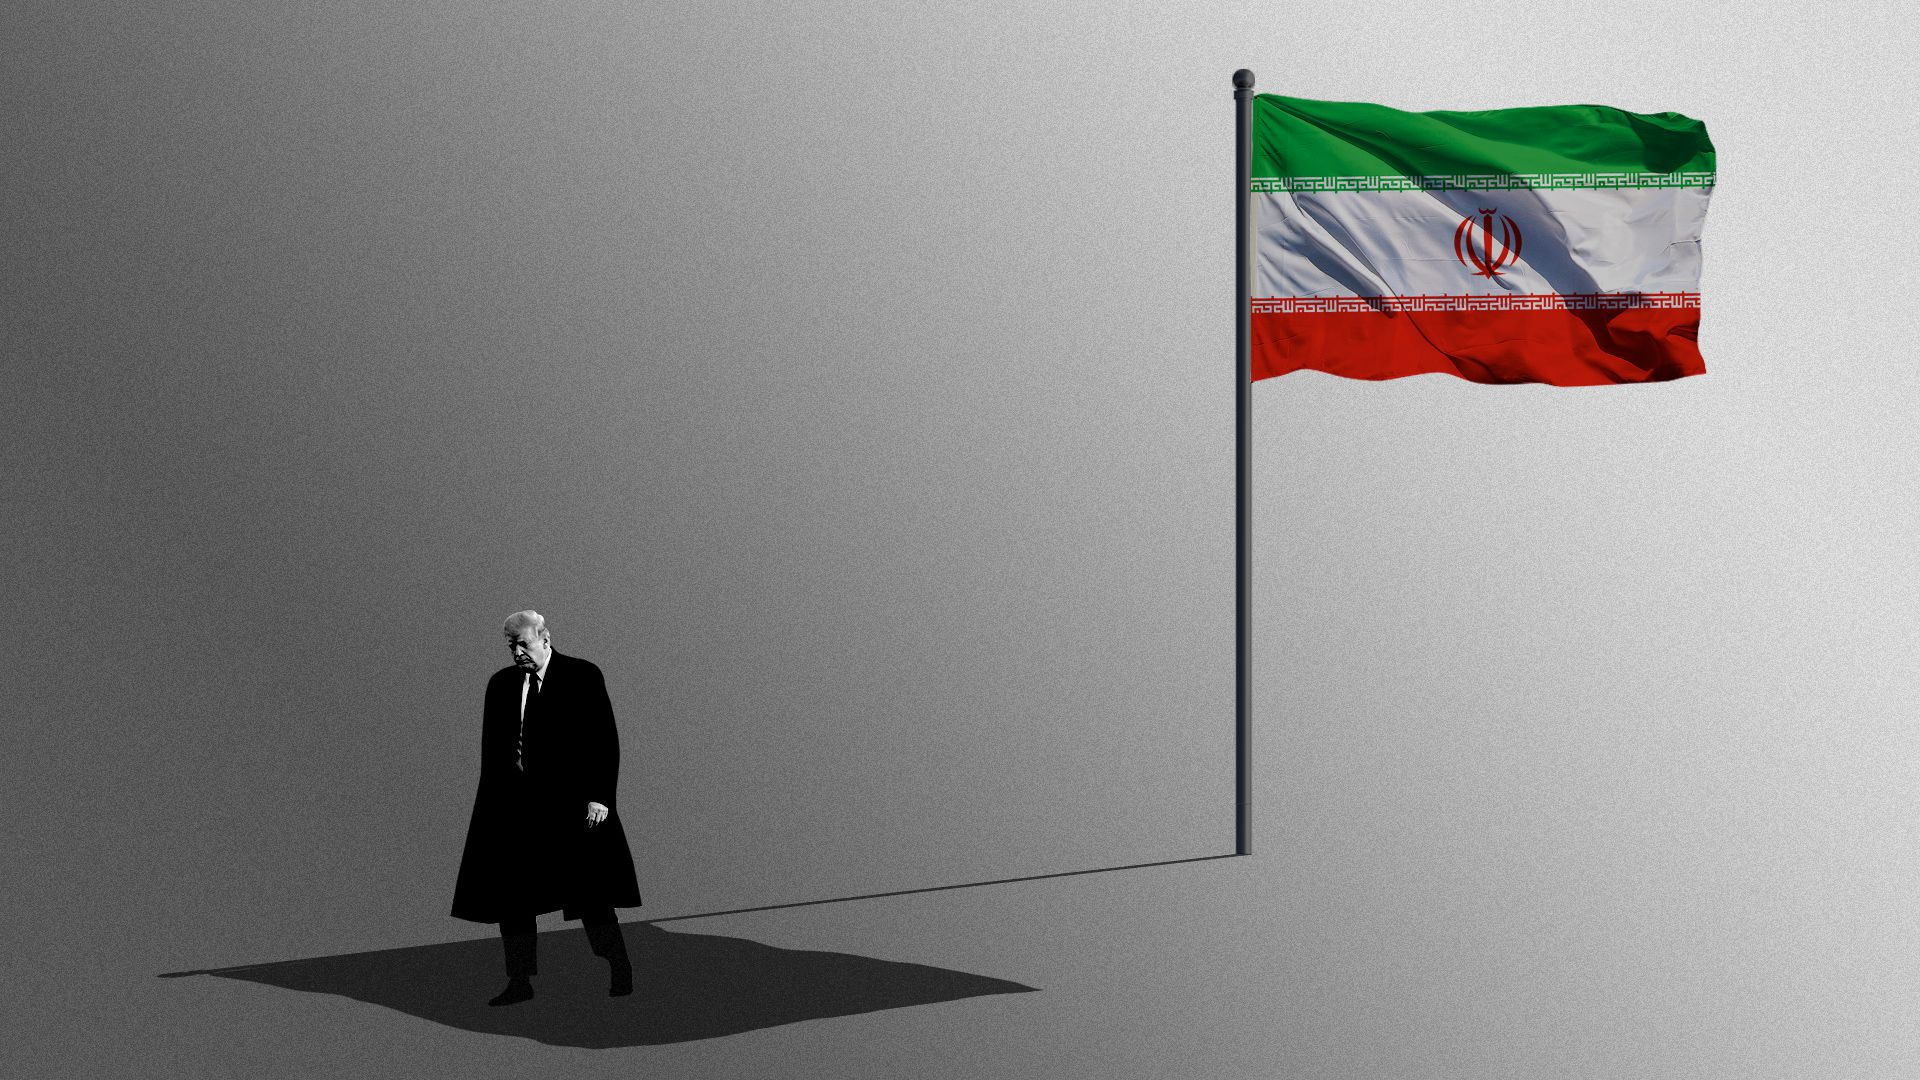 Illustration of President Trump in the shadow of the Iranian flag